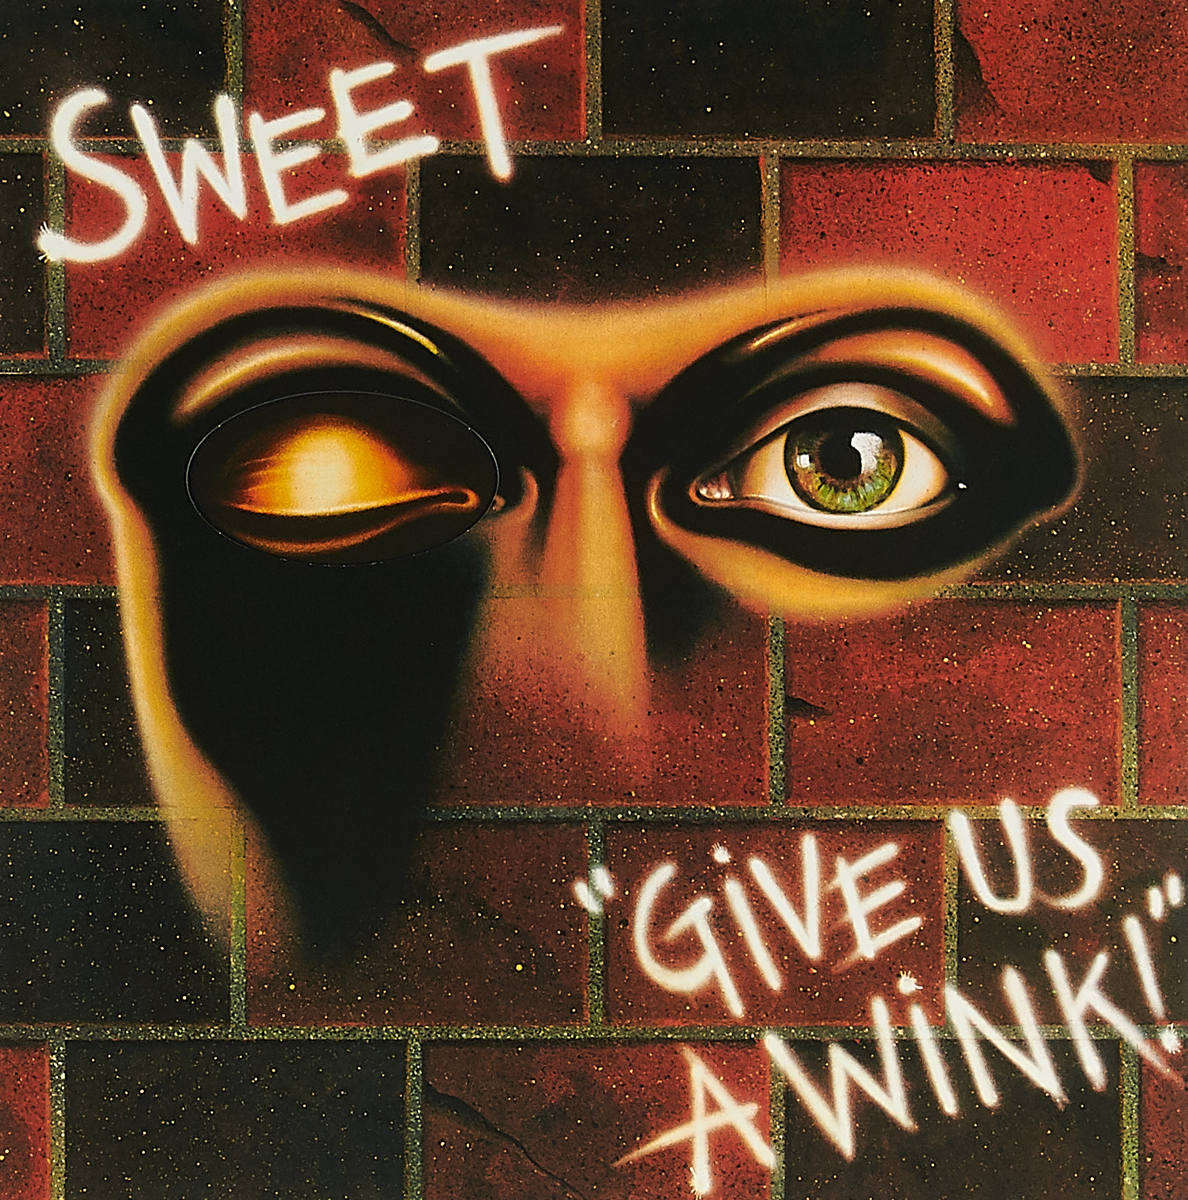 Sweet Sweet. Give Us A Wink (New Vinyl Edition) (LP) sweet sweet give us a wink new vinyl edition lp